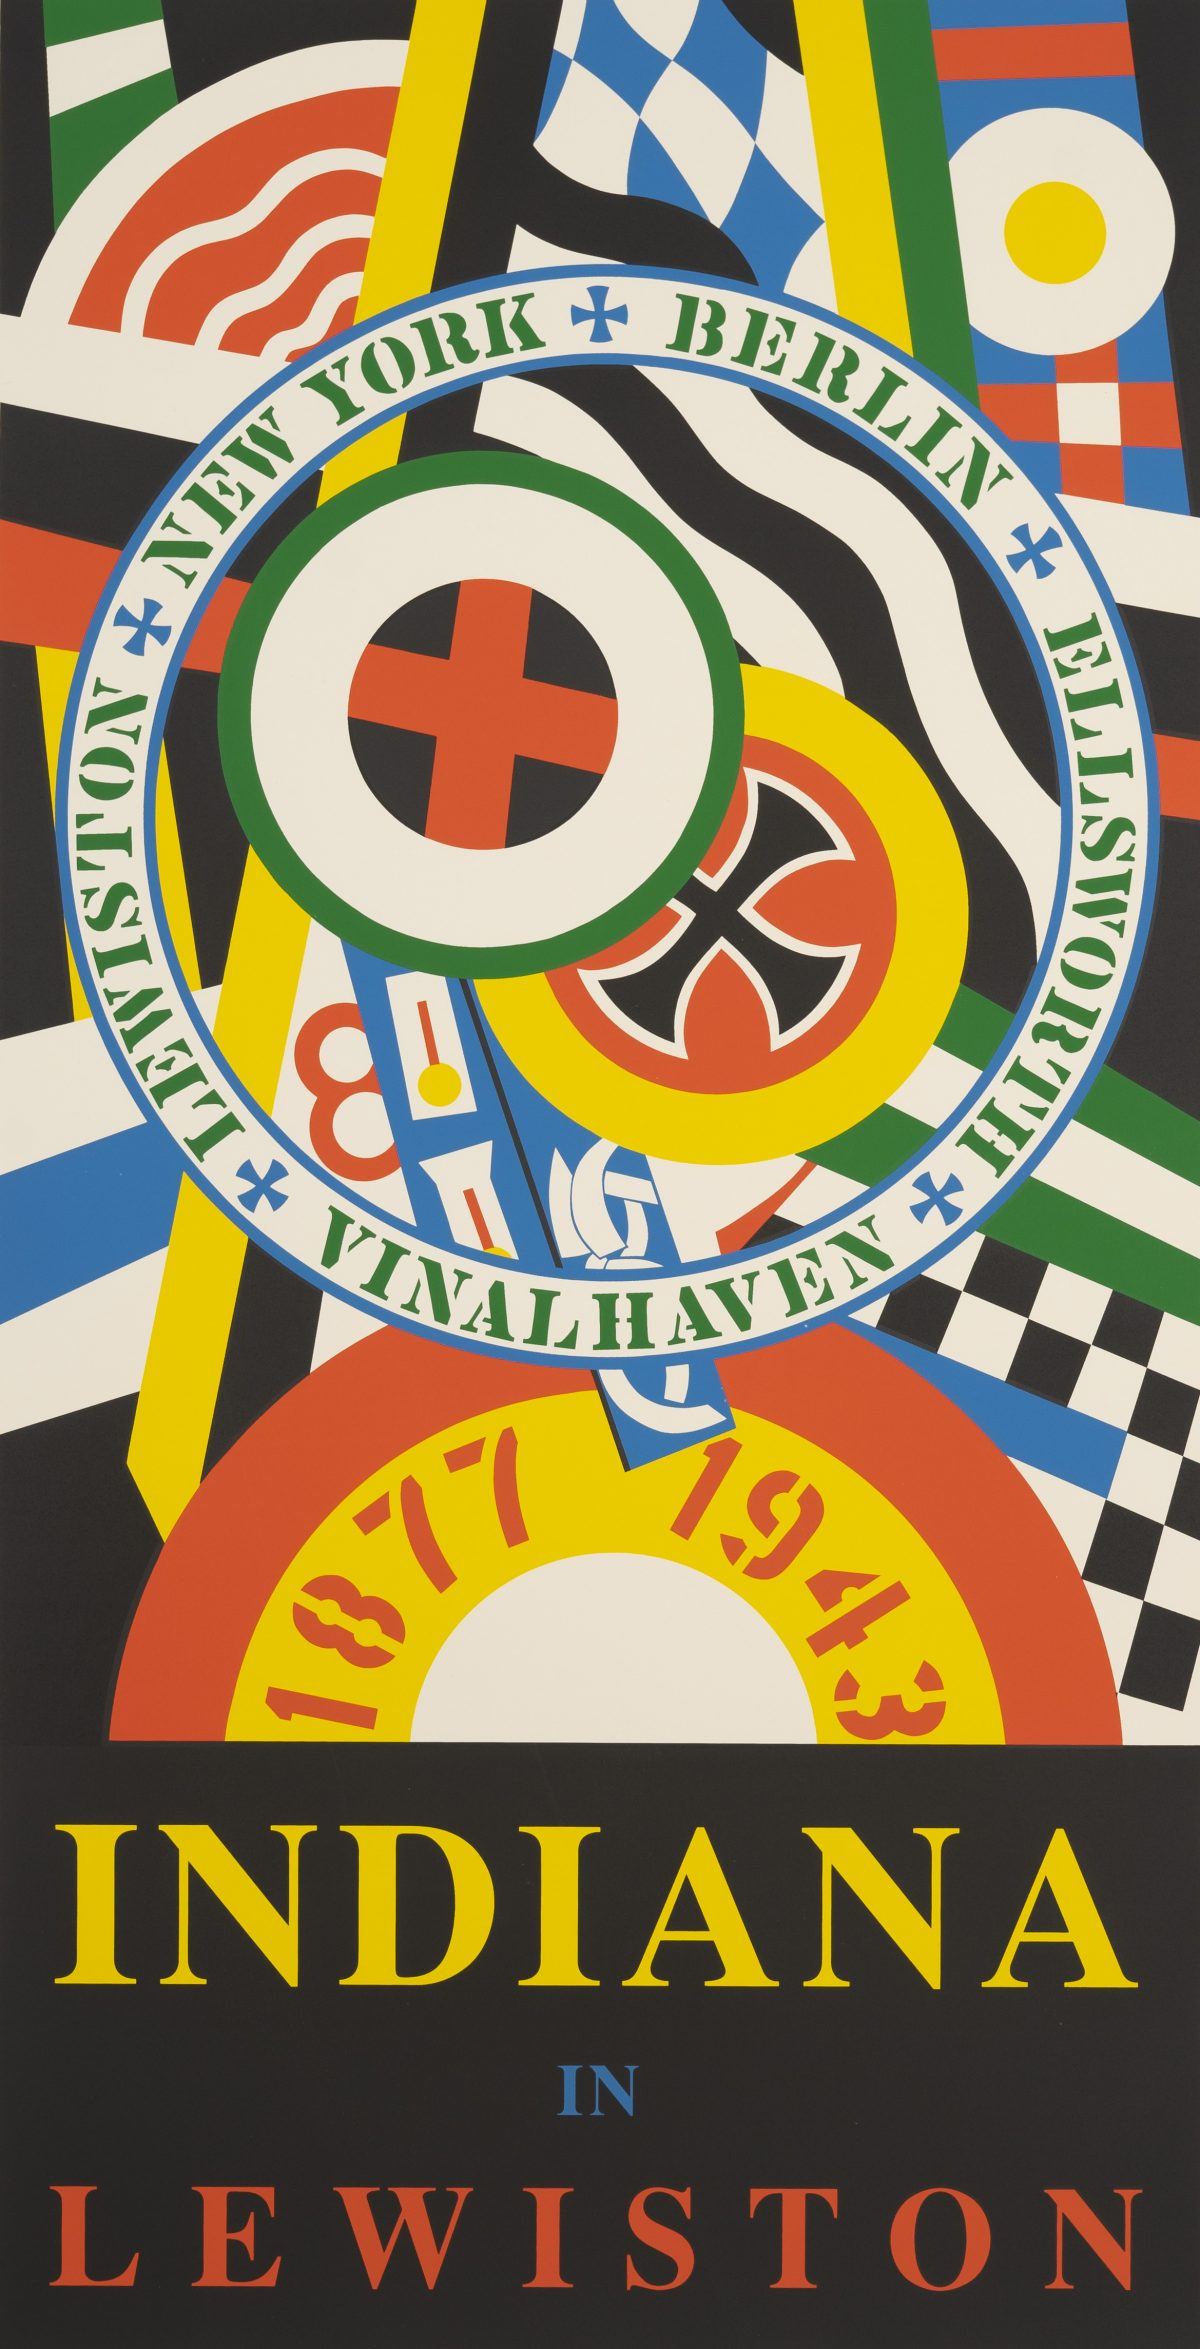 Robert Indiana - Indiana in Lewiston